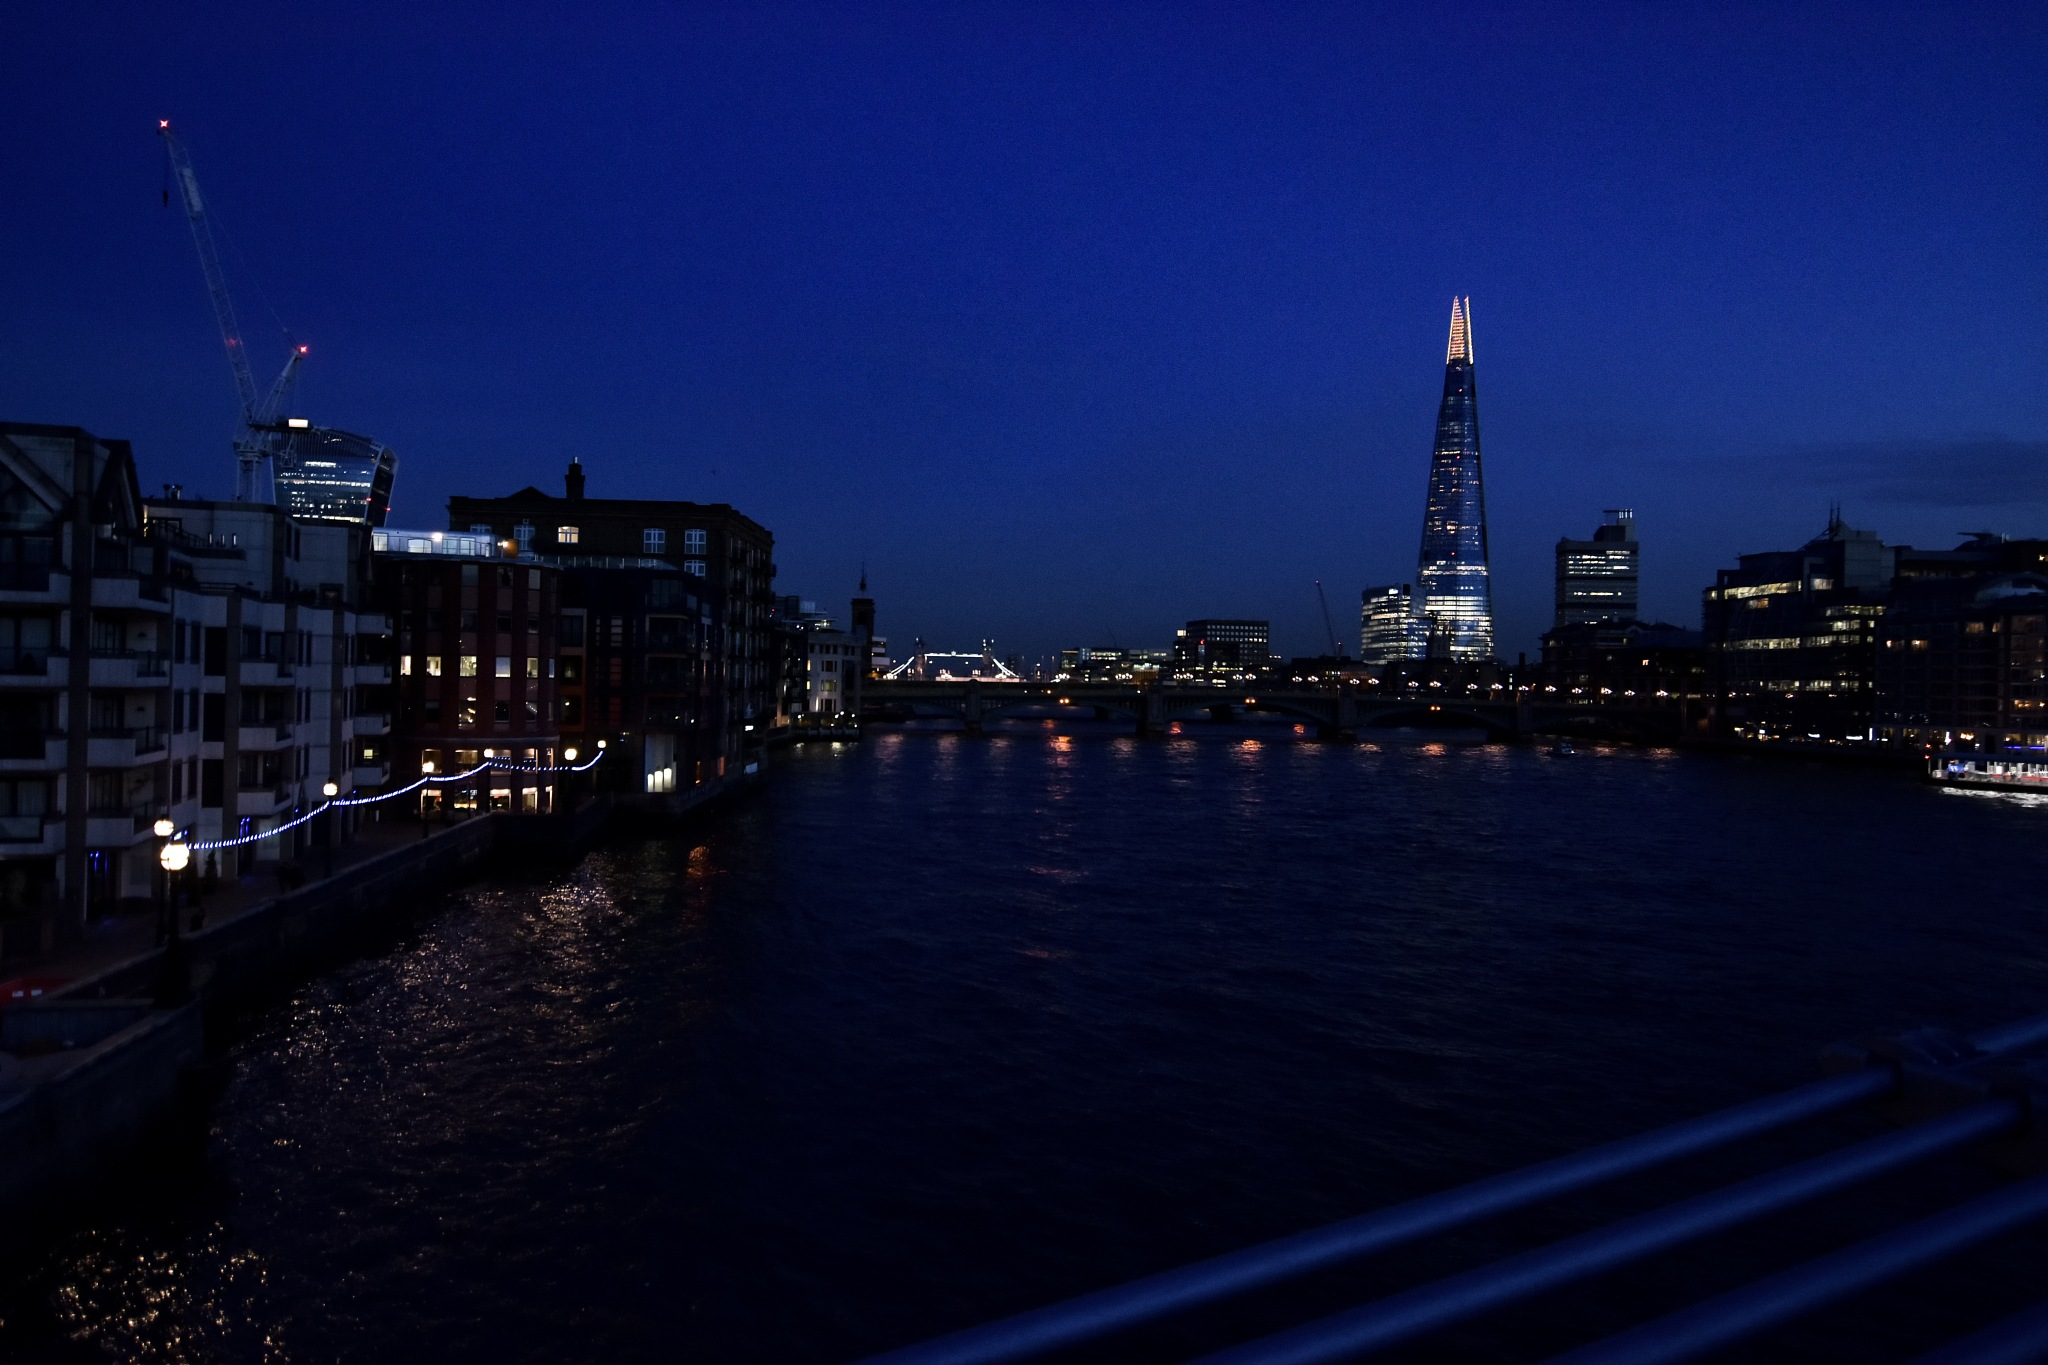 RIVER THAMES by NIGHT by Tom P